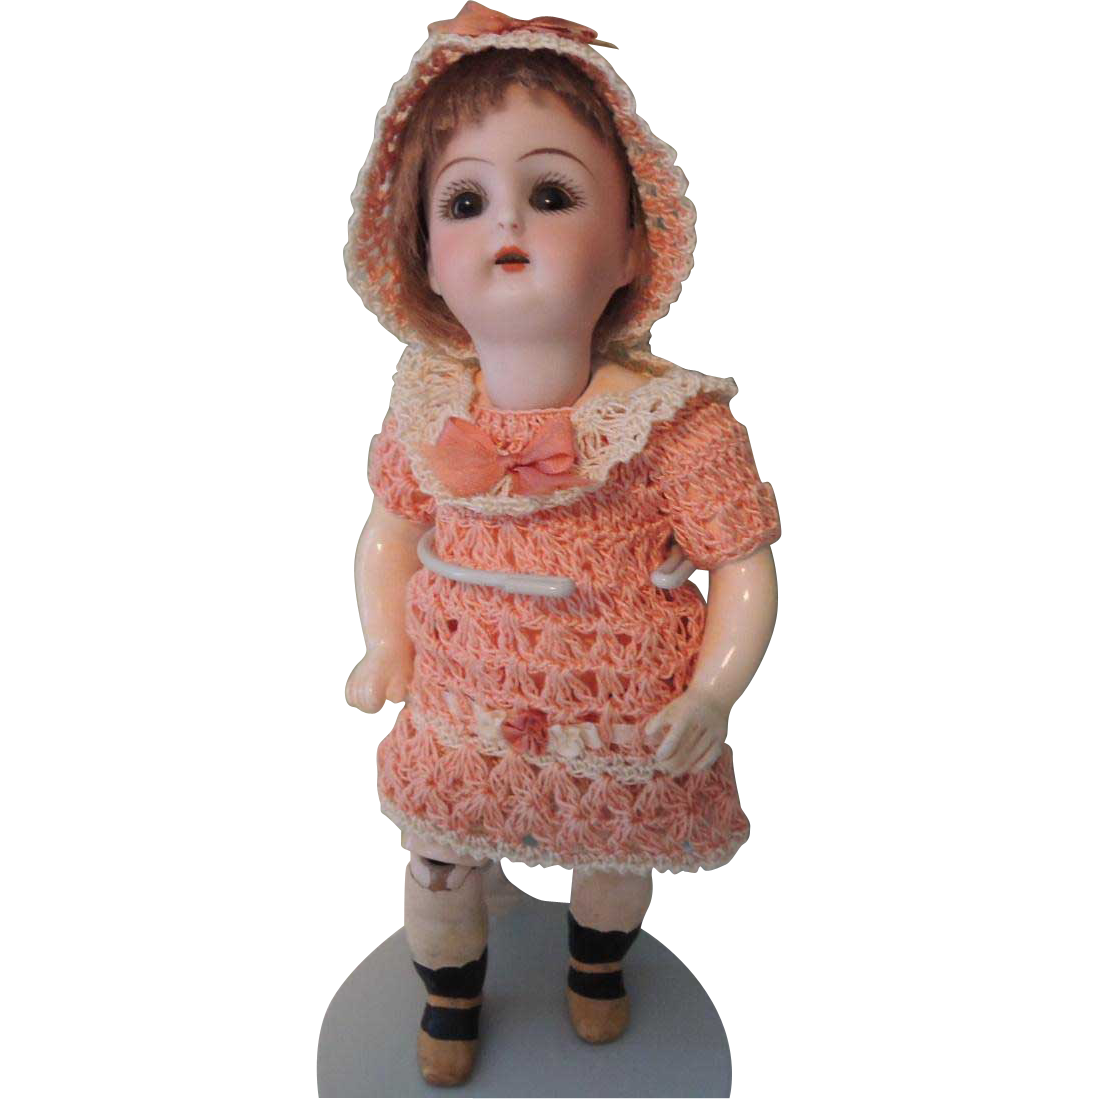 Tiny German Bisque Head Doll with HTF Body & Pierced Ears